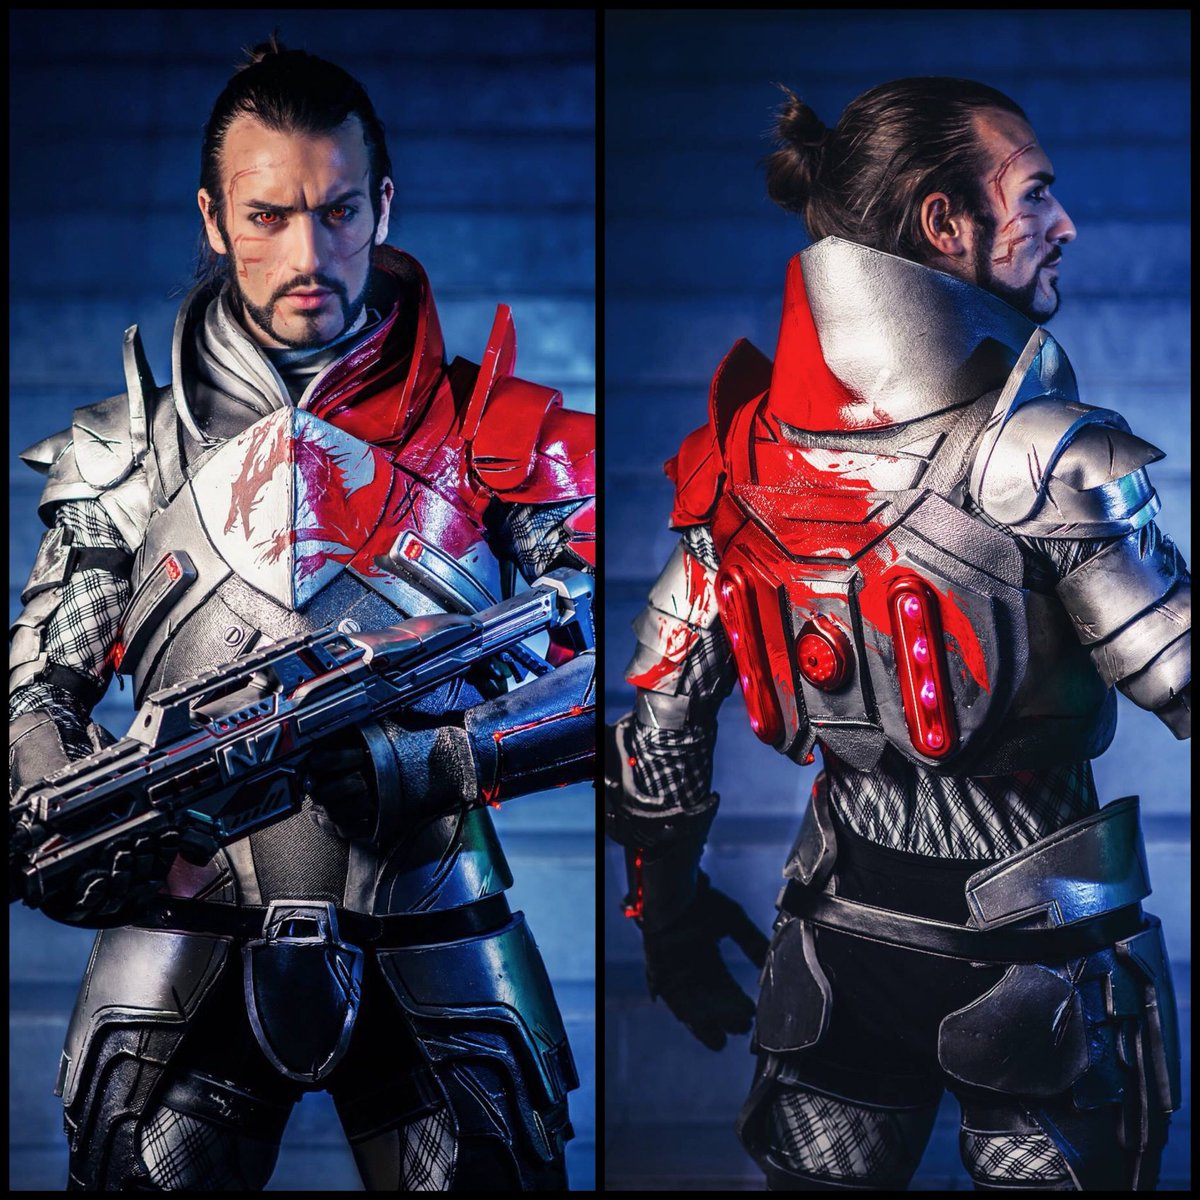 Leon Chiro On Twitter Throwback To 2015 When I Made My Blood Dragon Armor From Mass Effect 3 In 25 Days Of Work I Thought Many Of You Never Saw Lots Of The blood dragon armor in mass effect 2. leon chiro on twitter throwback to